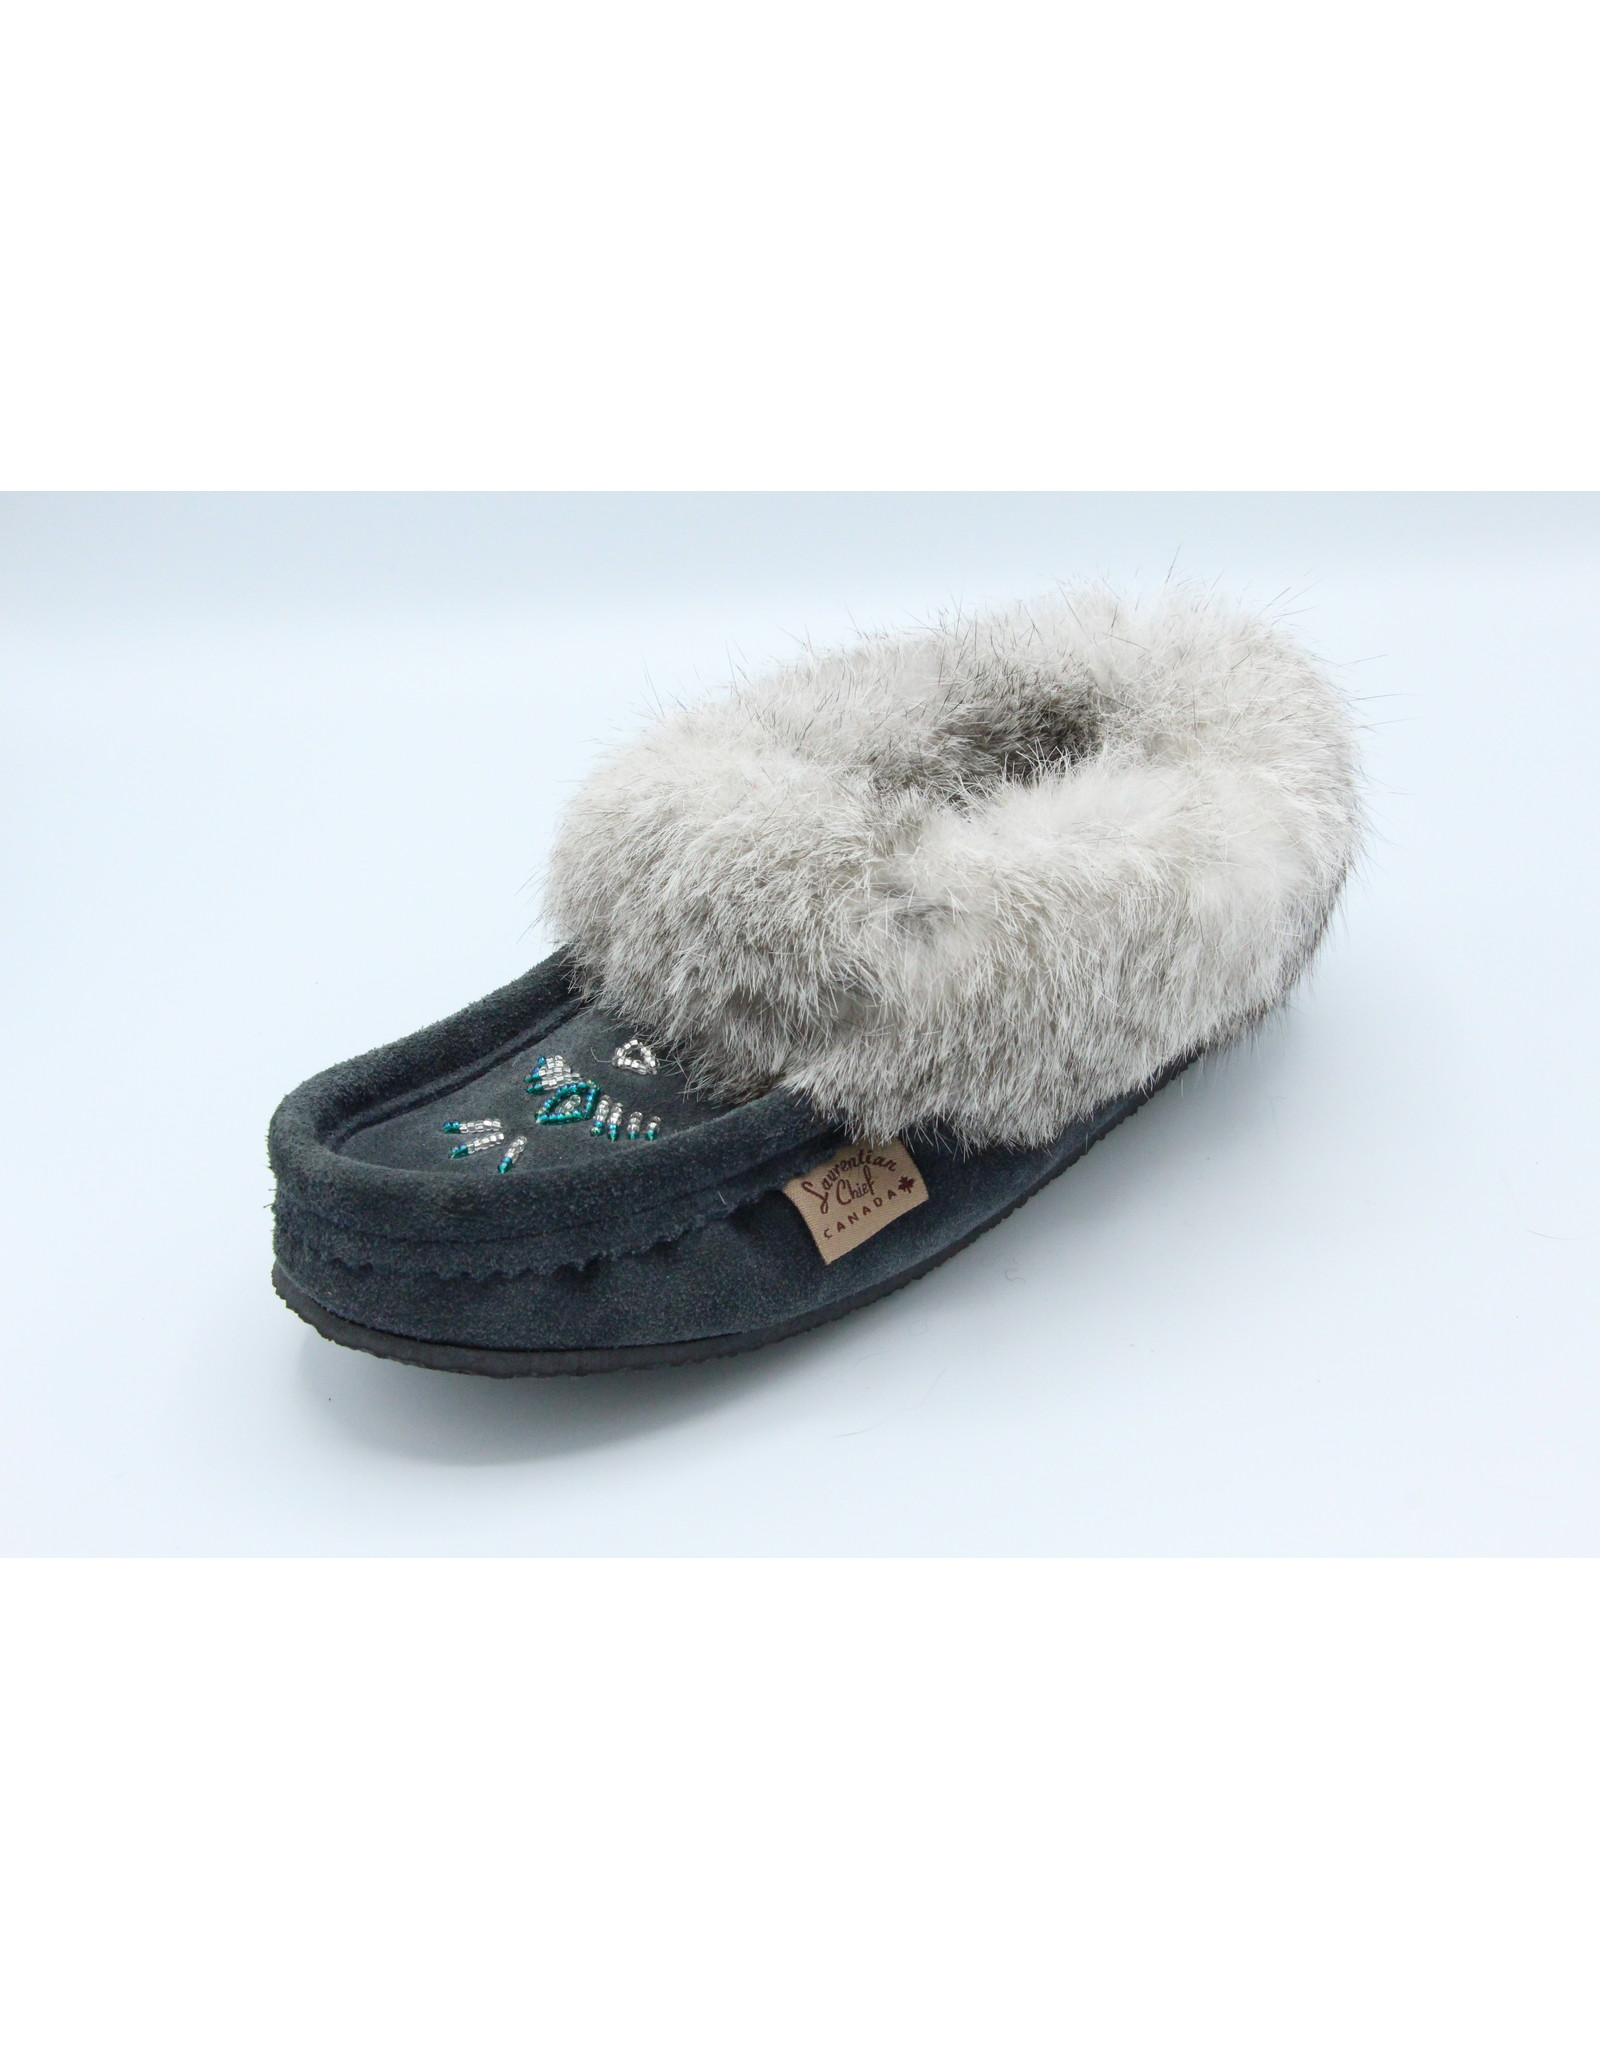 Navy Blue Suede Fur Slipper Moccasin with Rubber Sole - 12658L